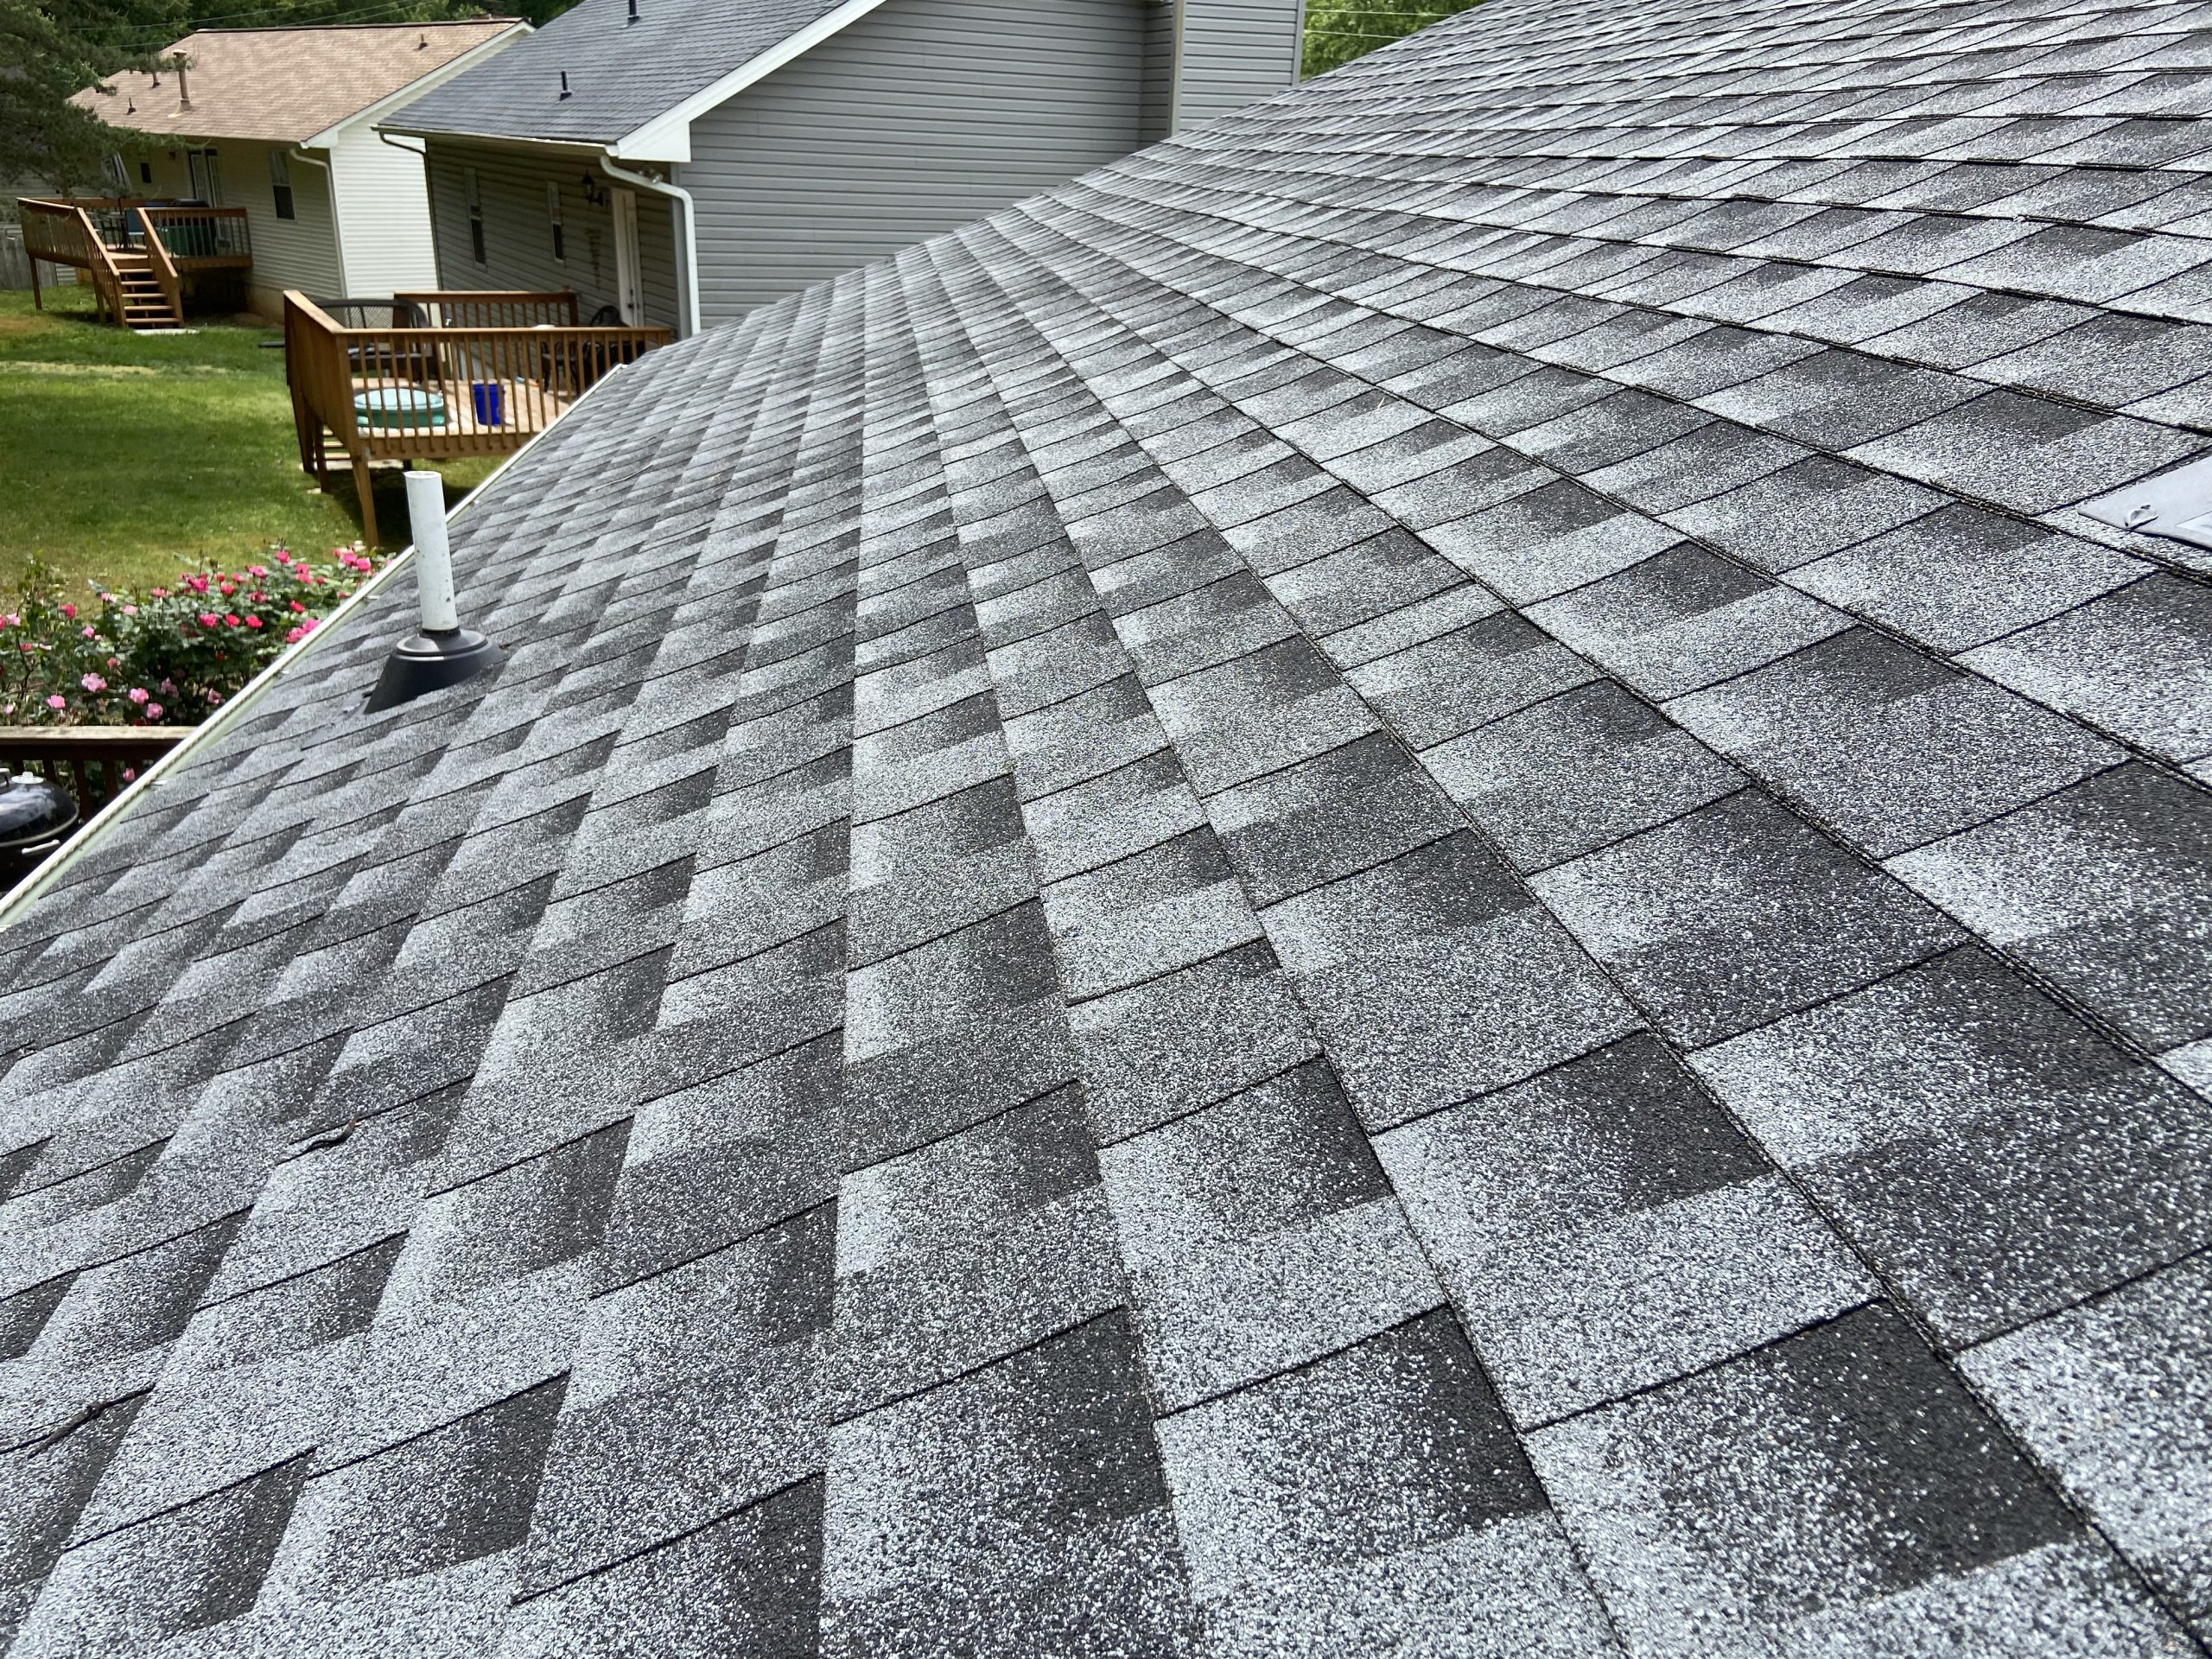 This a view at the roof slope with GAF Timberline HD Shingles.